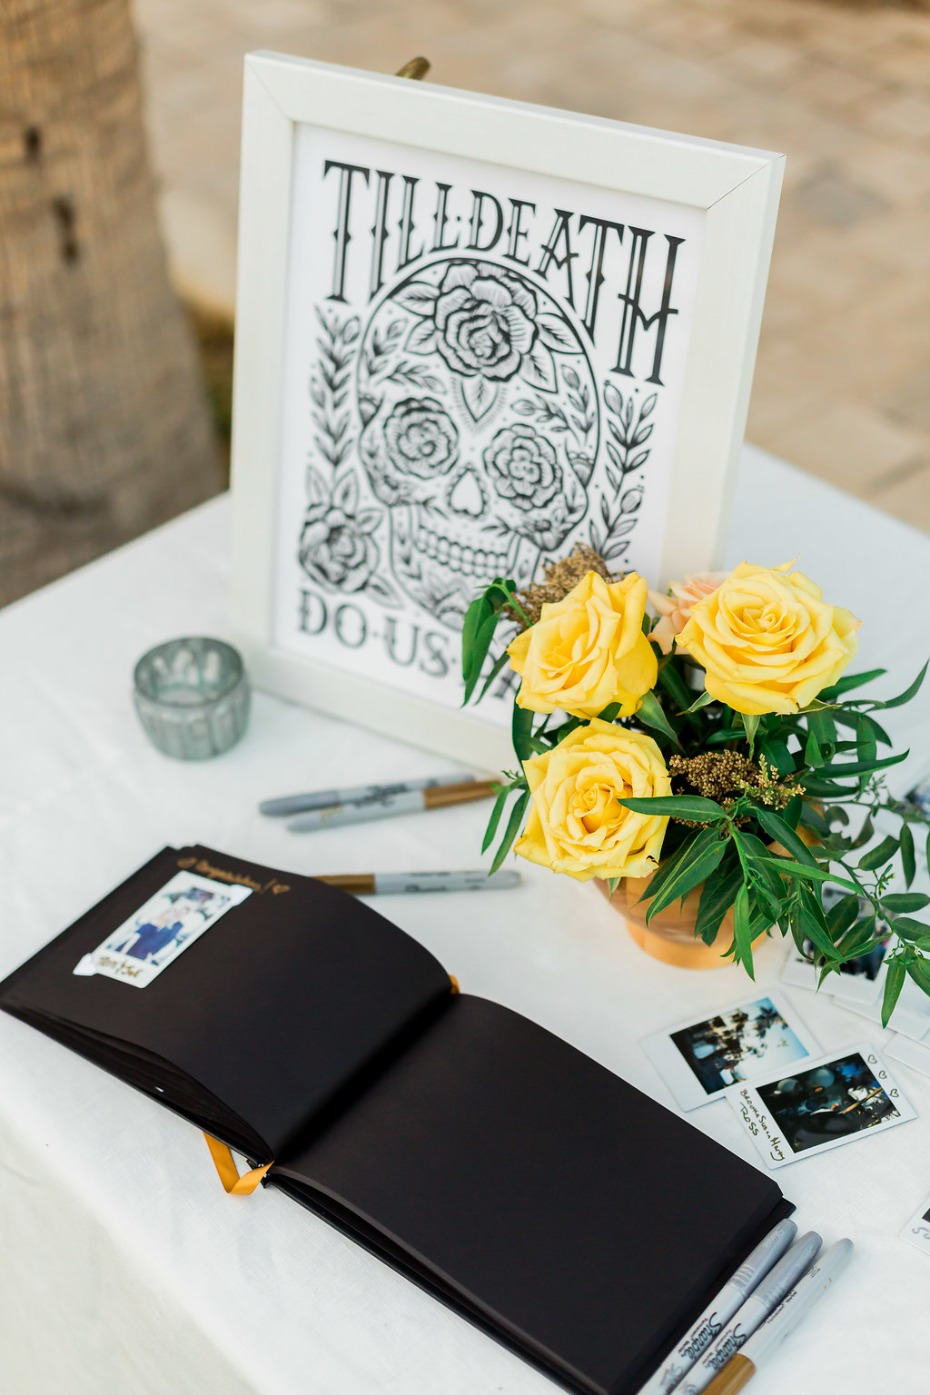 till death do us part wedding guest book table